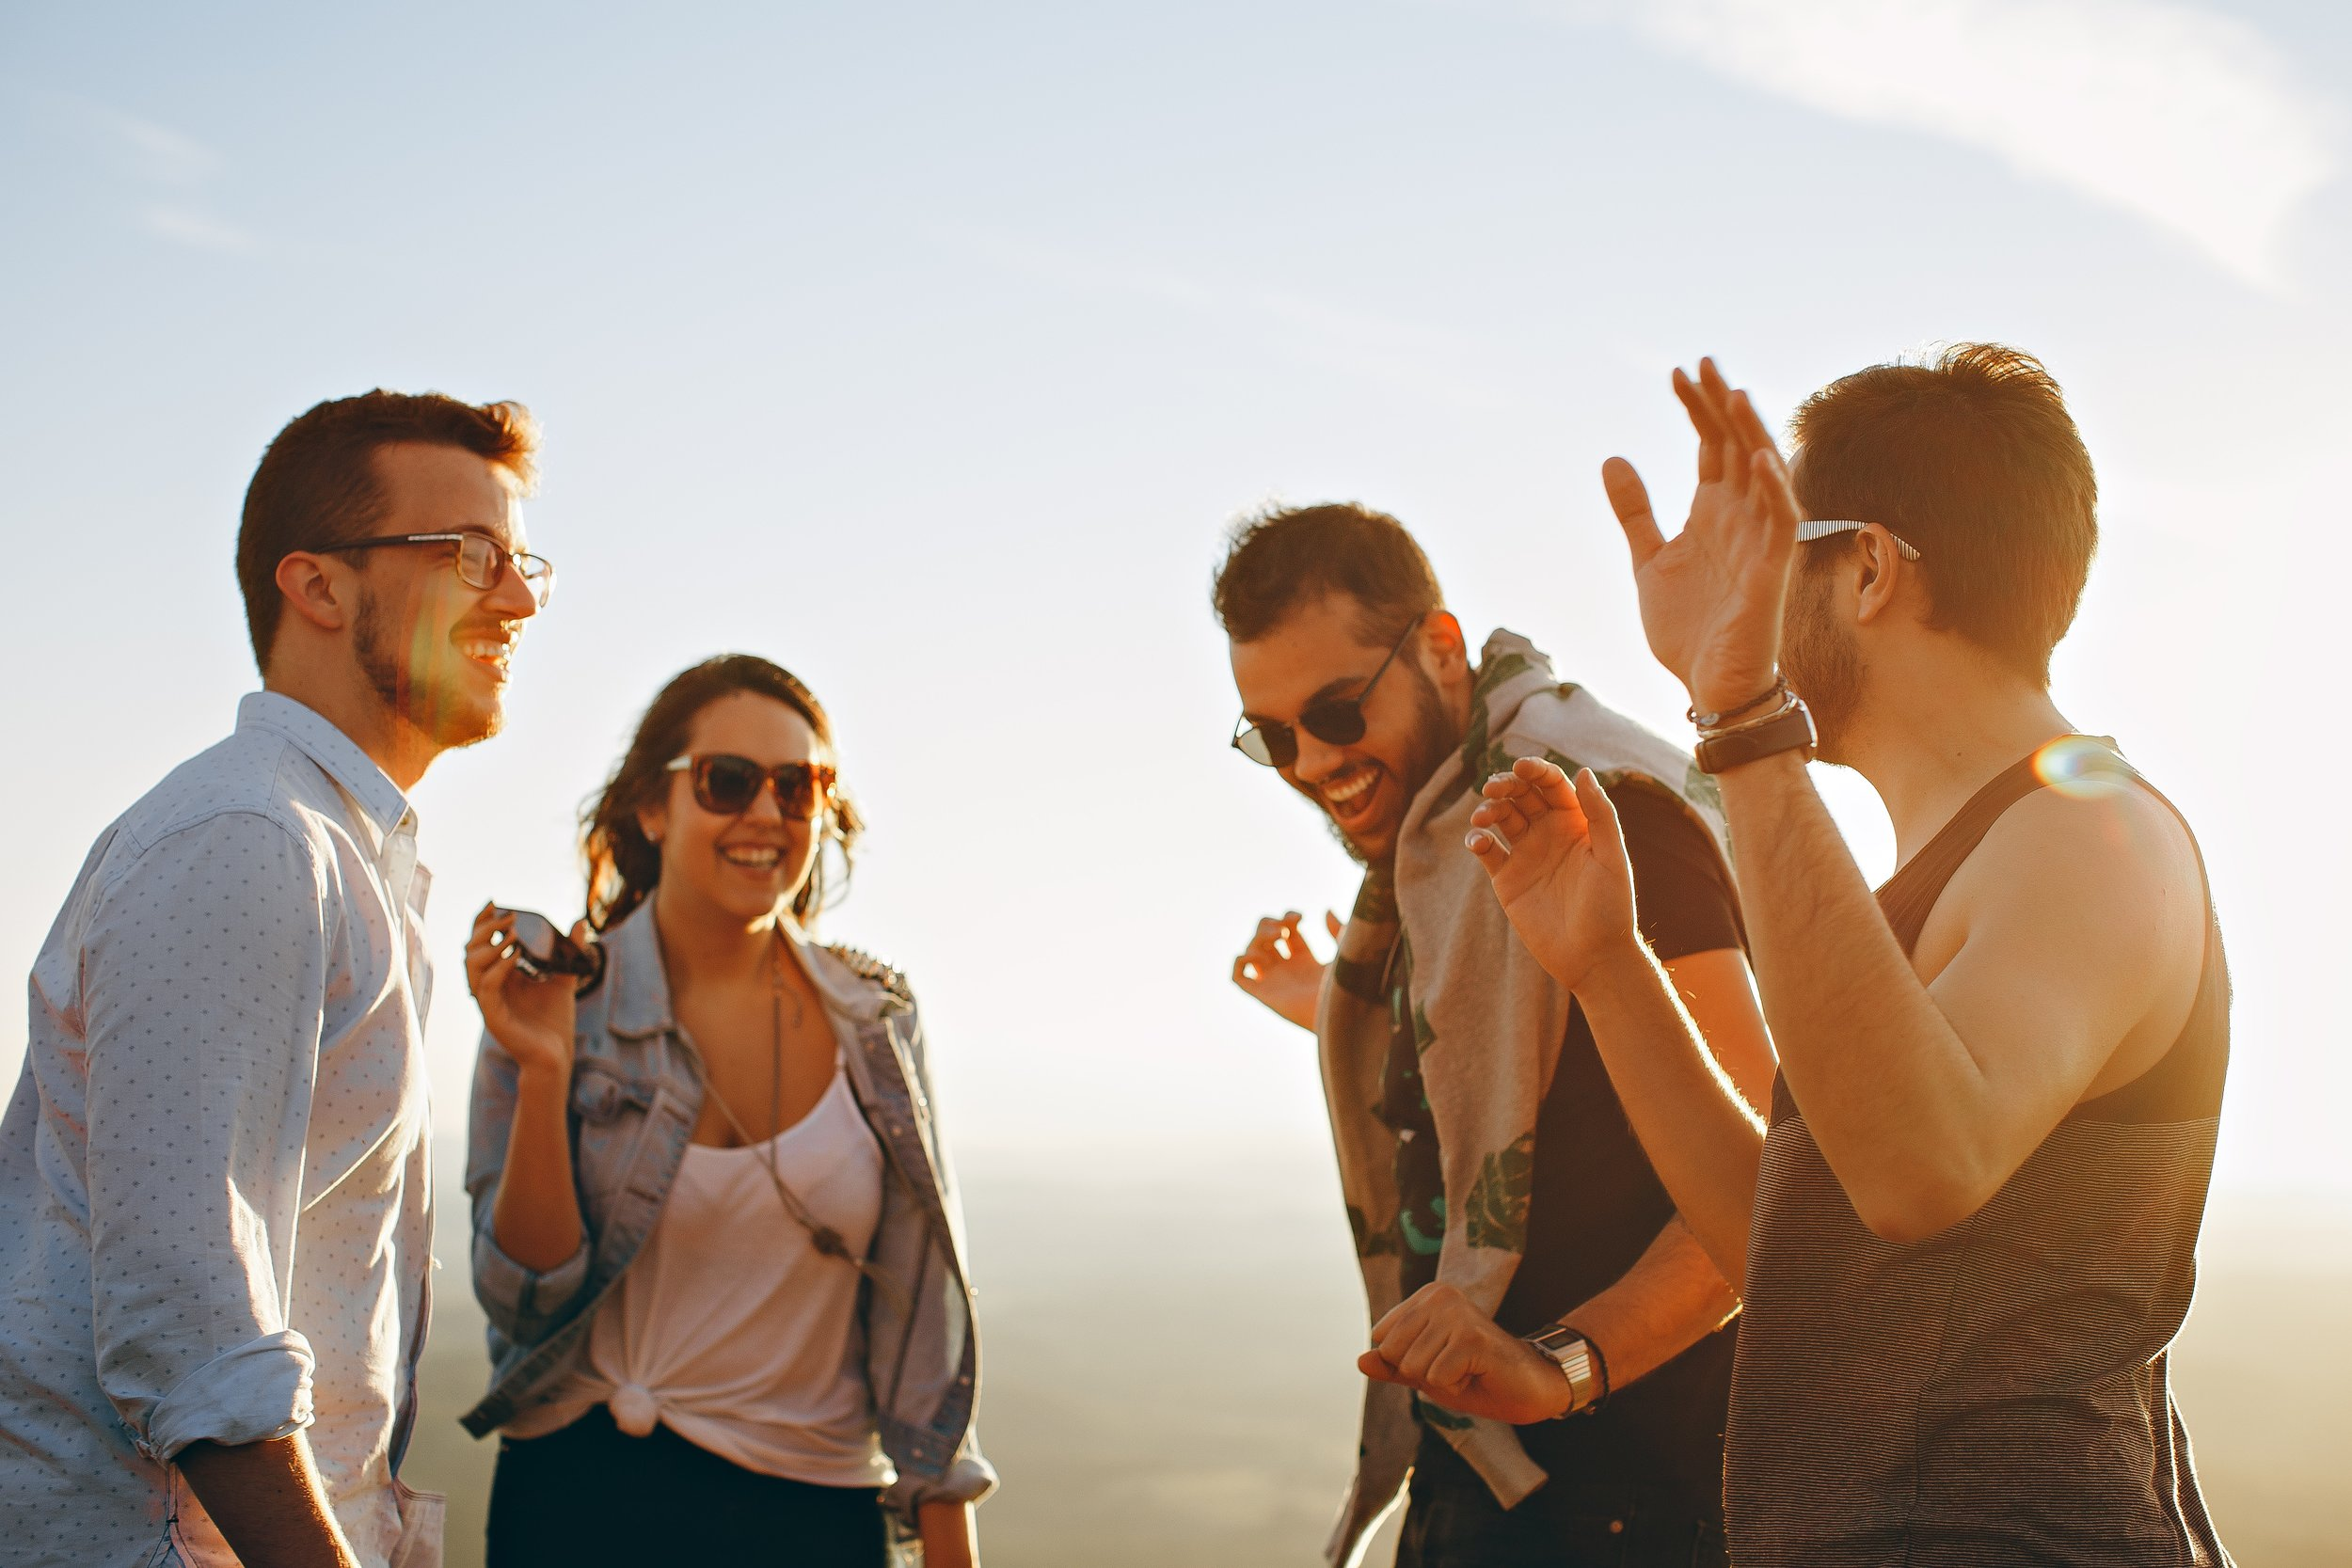 Better Communication - Learn how to connect with each other beyond words and really hear and be heard.